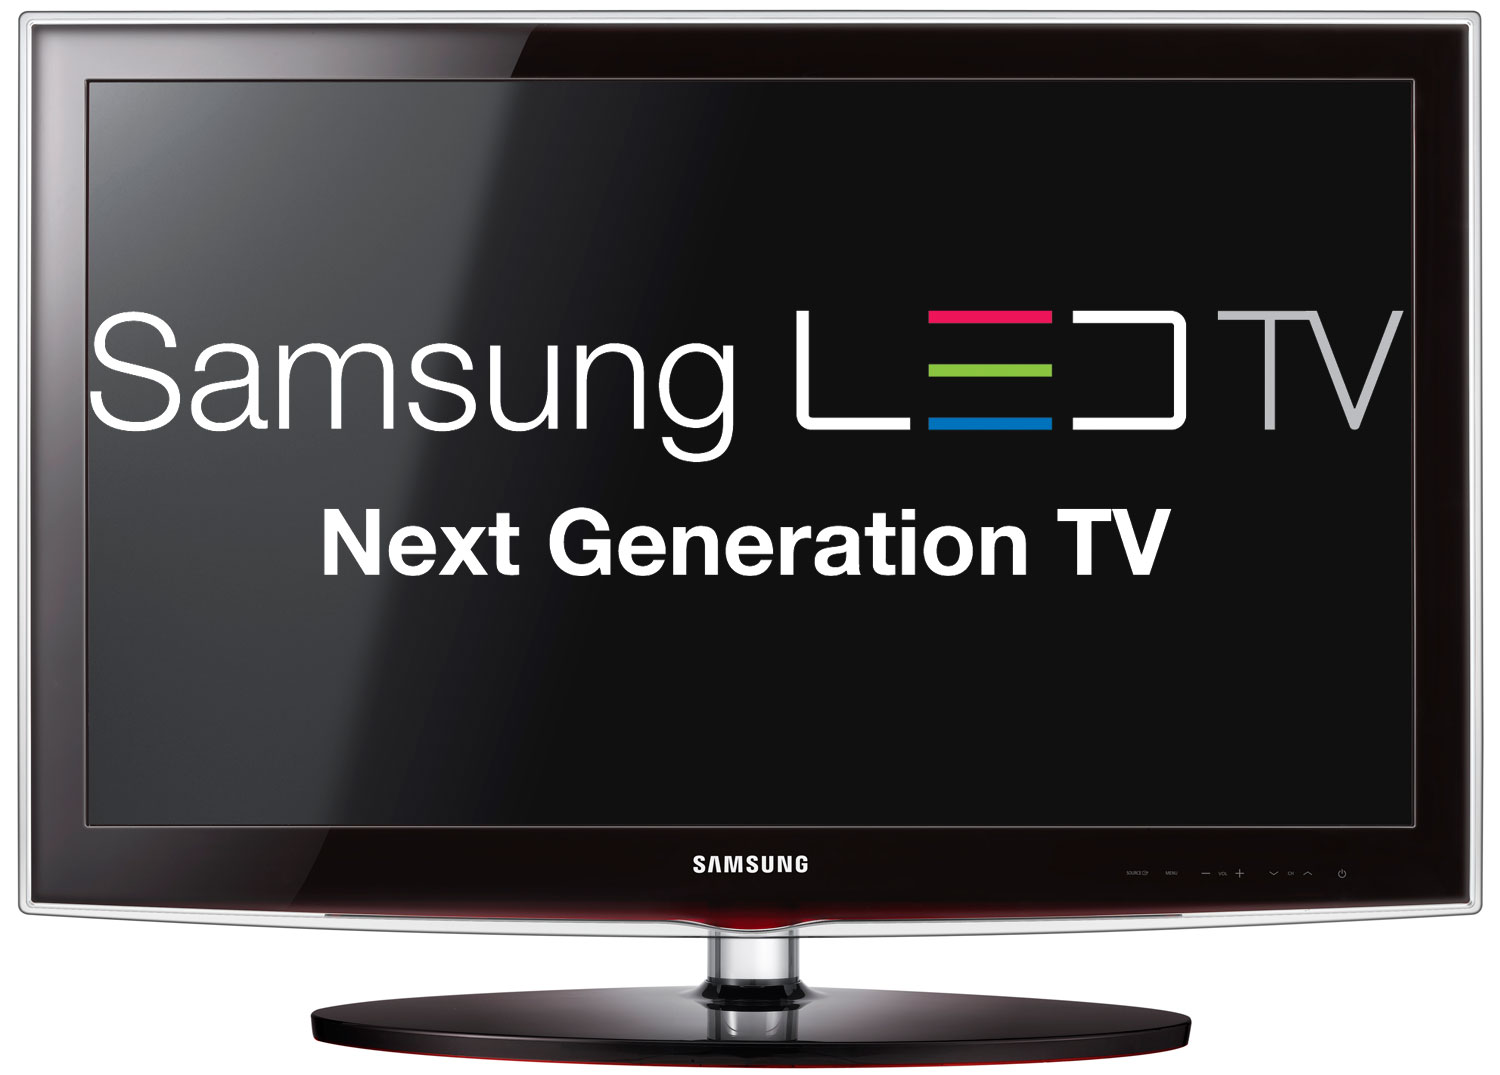 tv led samsung 42 tv led samsung 42 sur enperdresonlapin. Black Bedroom Furniture Sets. Home Design Ideas